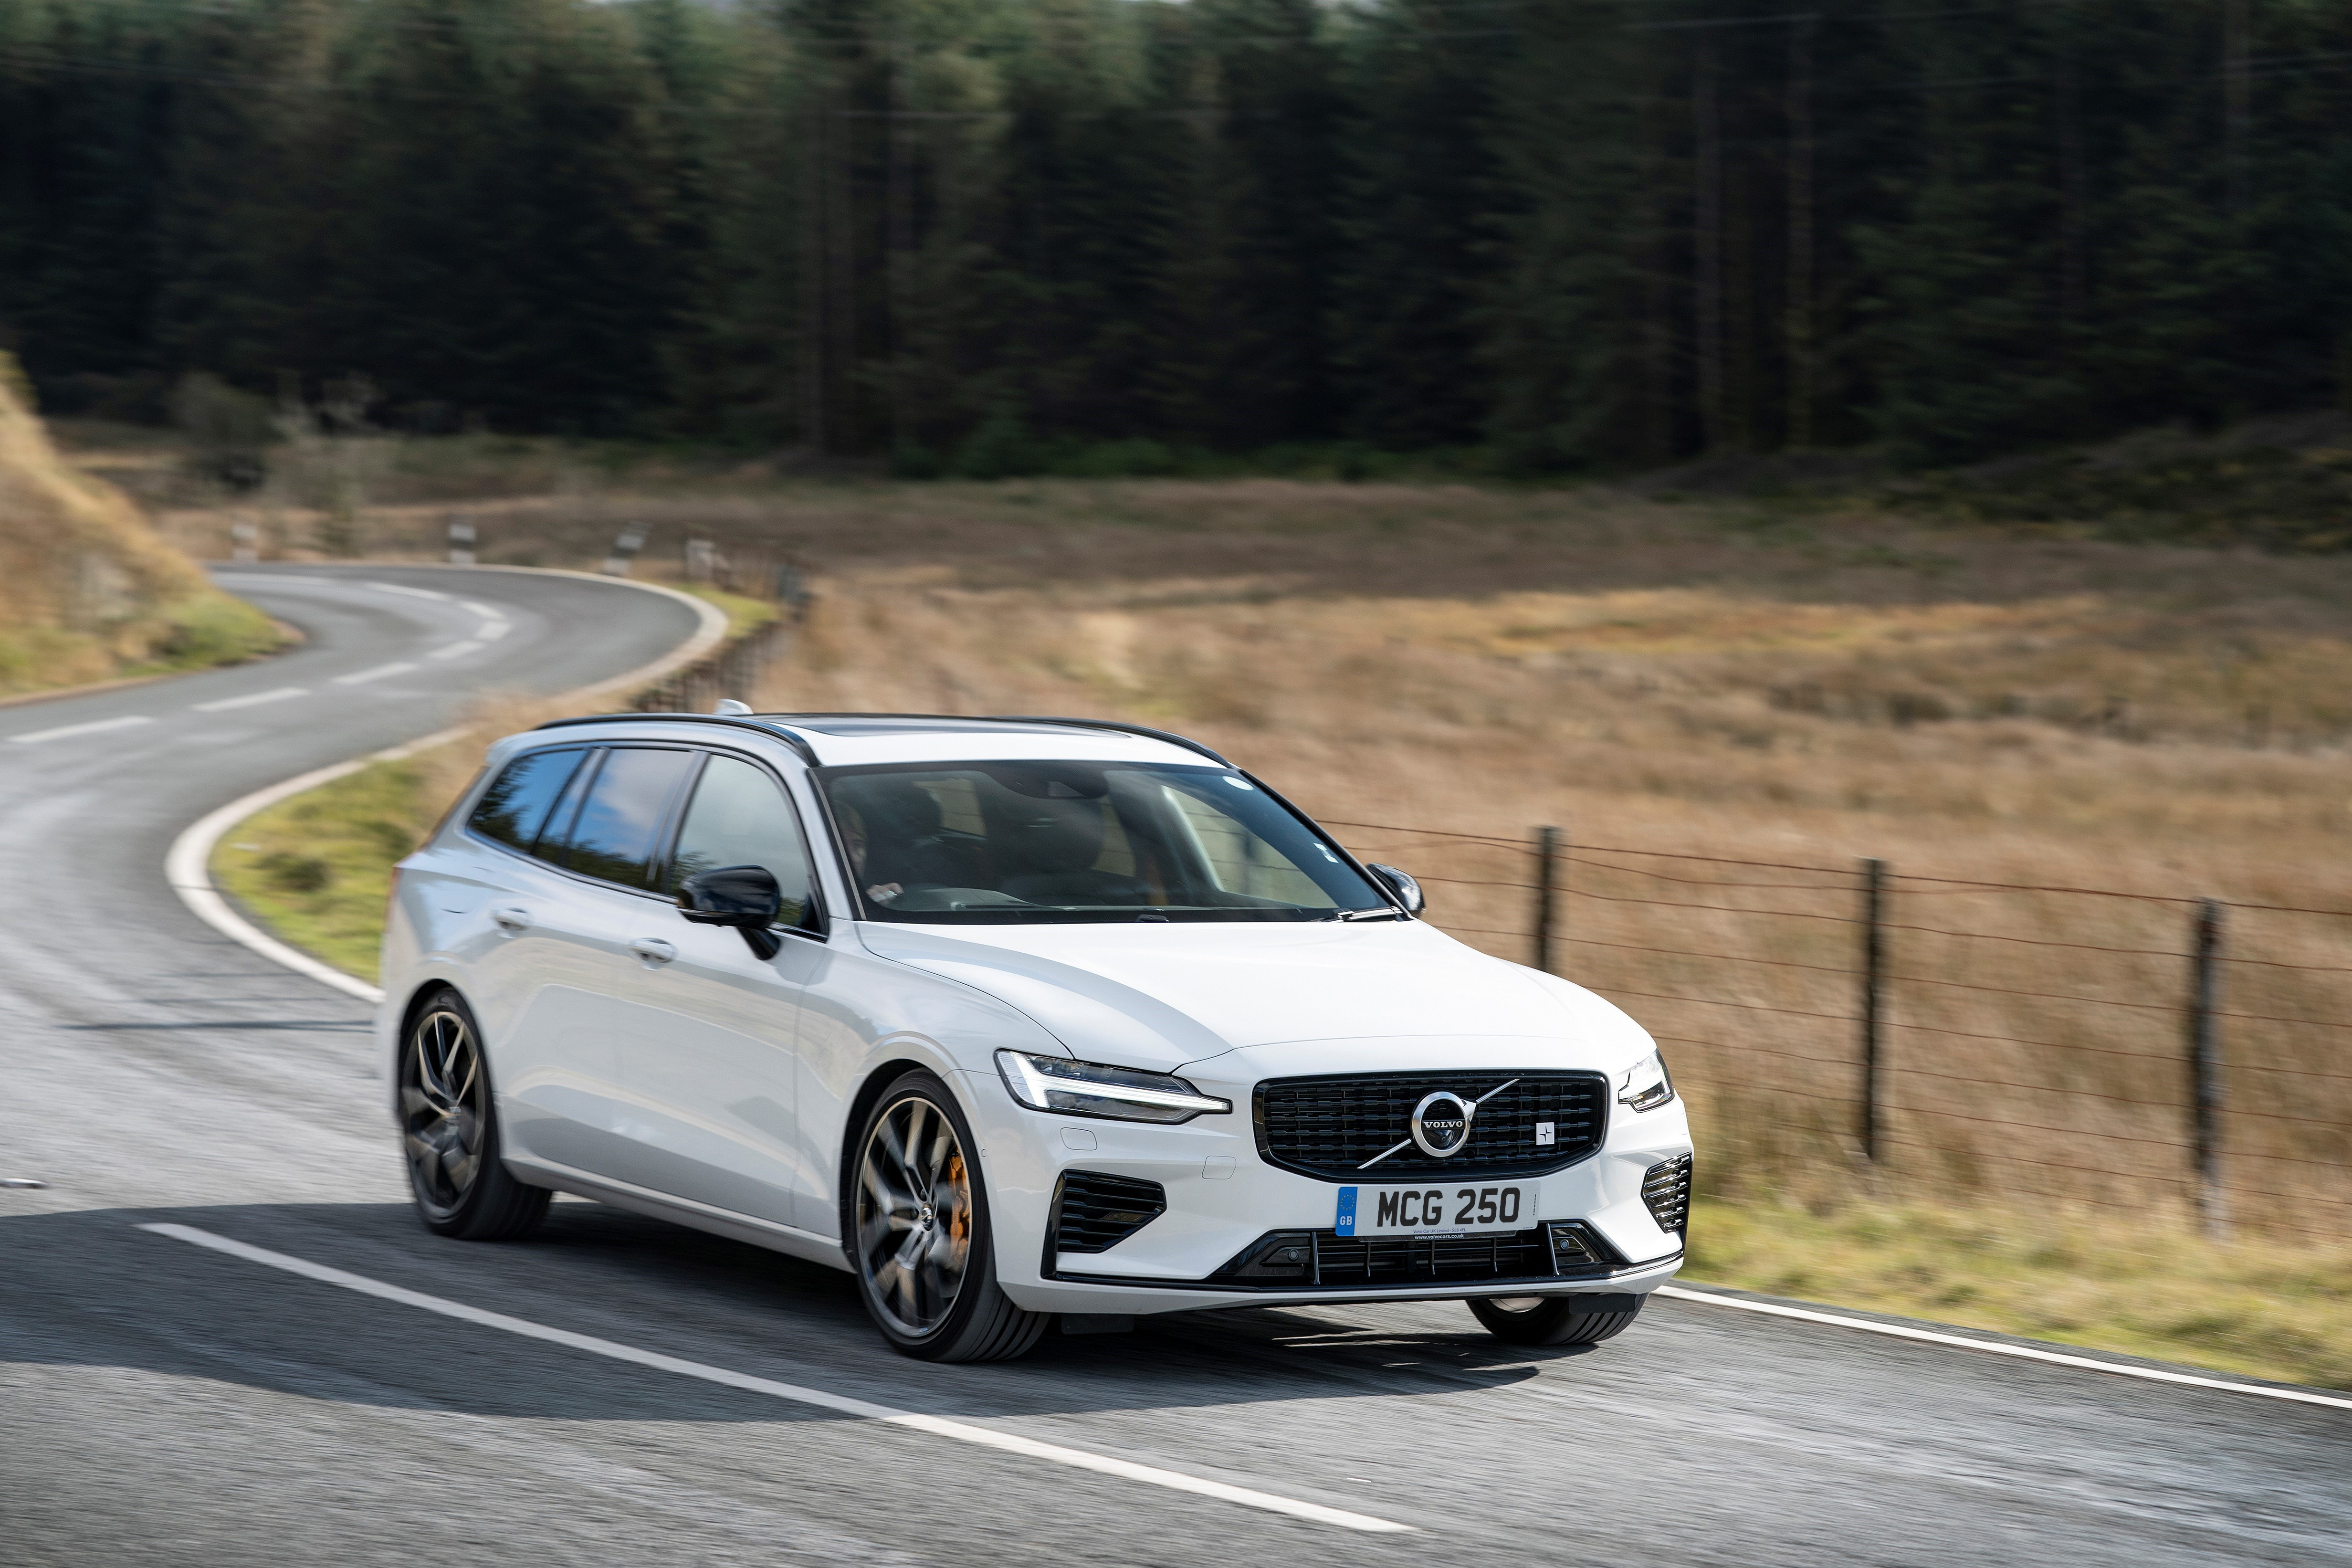 Redesigned front bumpers help the V60 to stand out